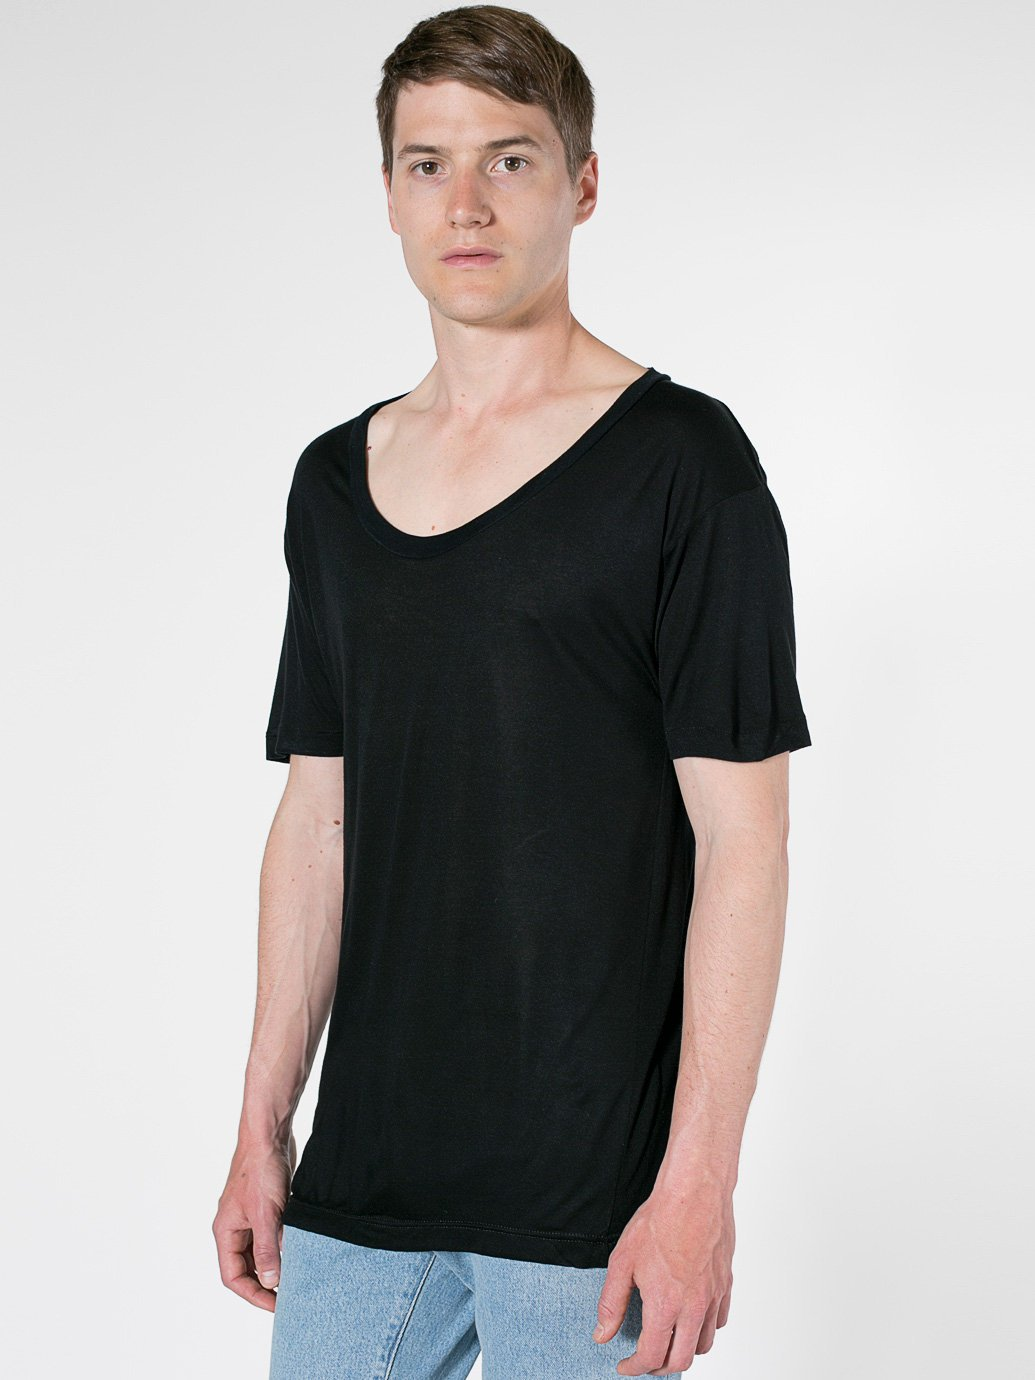 American apparel oversized viscose t shirt evan webster ink for American apparel custom t shirts